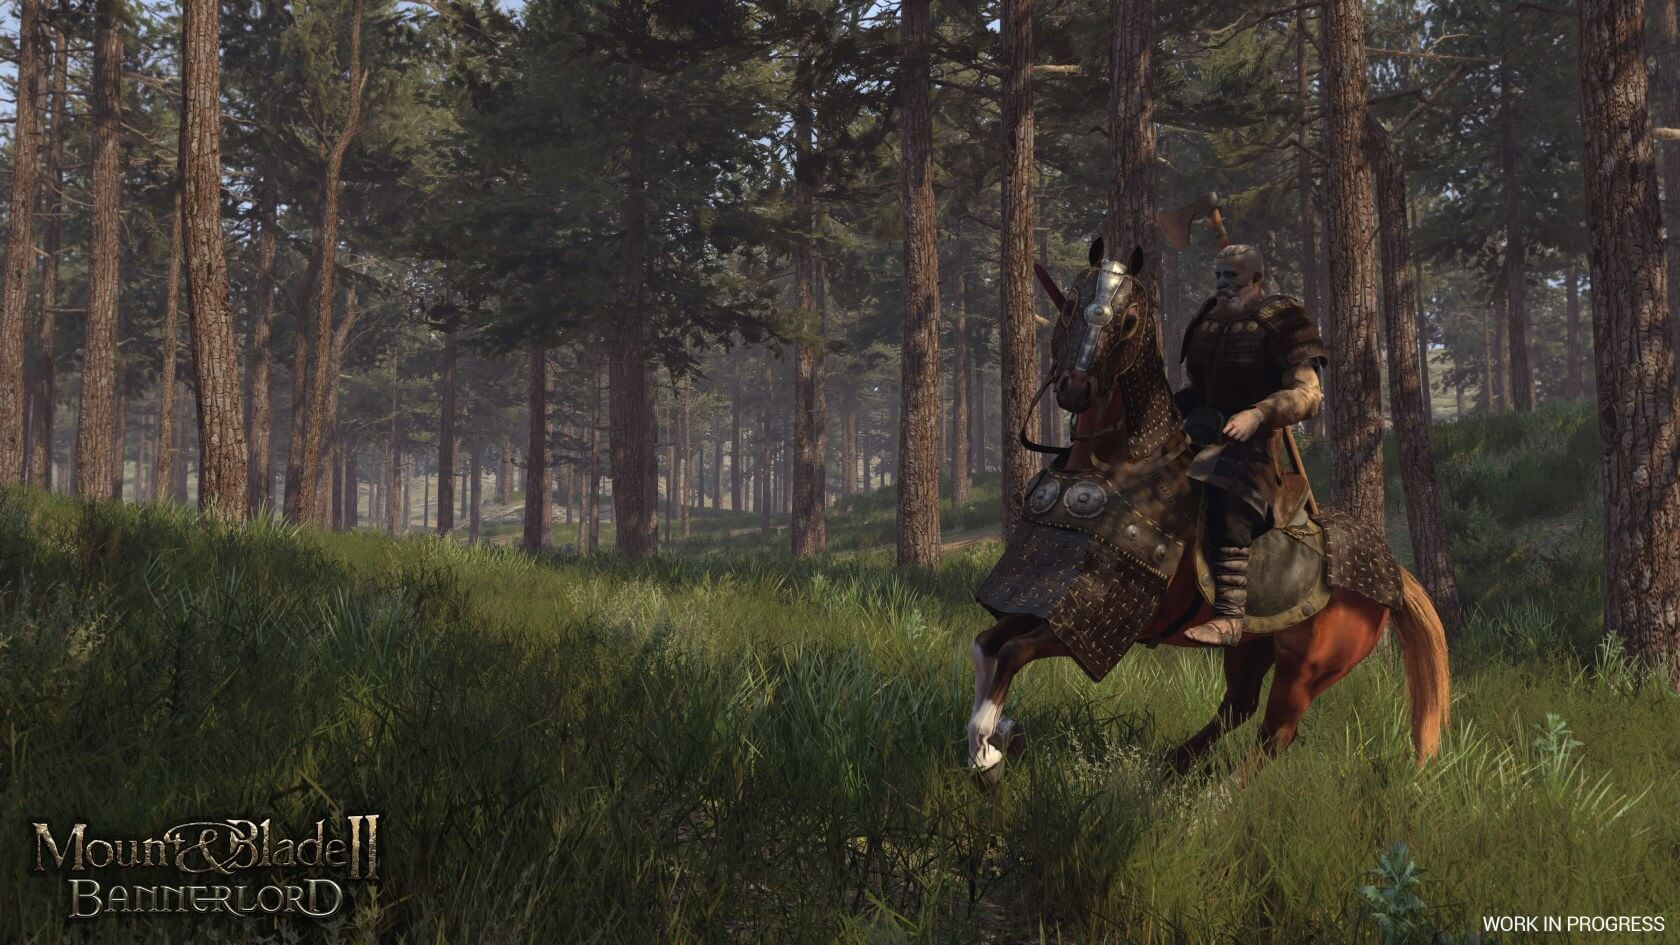 Medieval sandbox RPG Mount & Blade II: Bannerlord releases on March 31 in Early Access